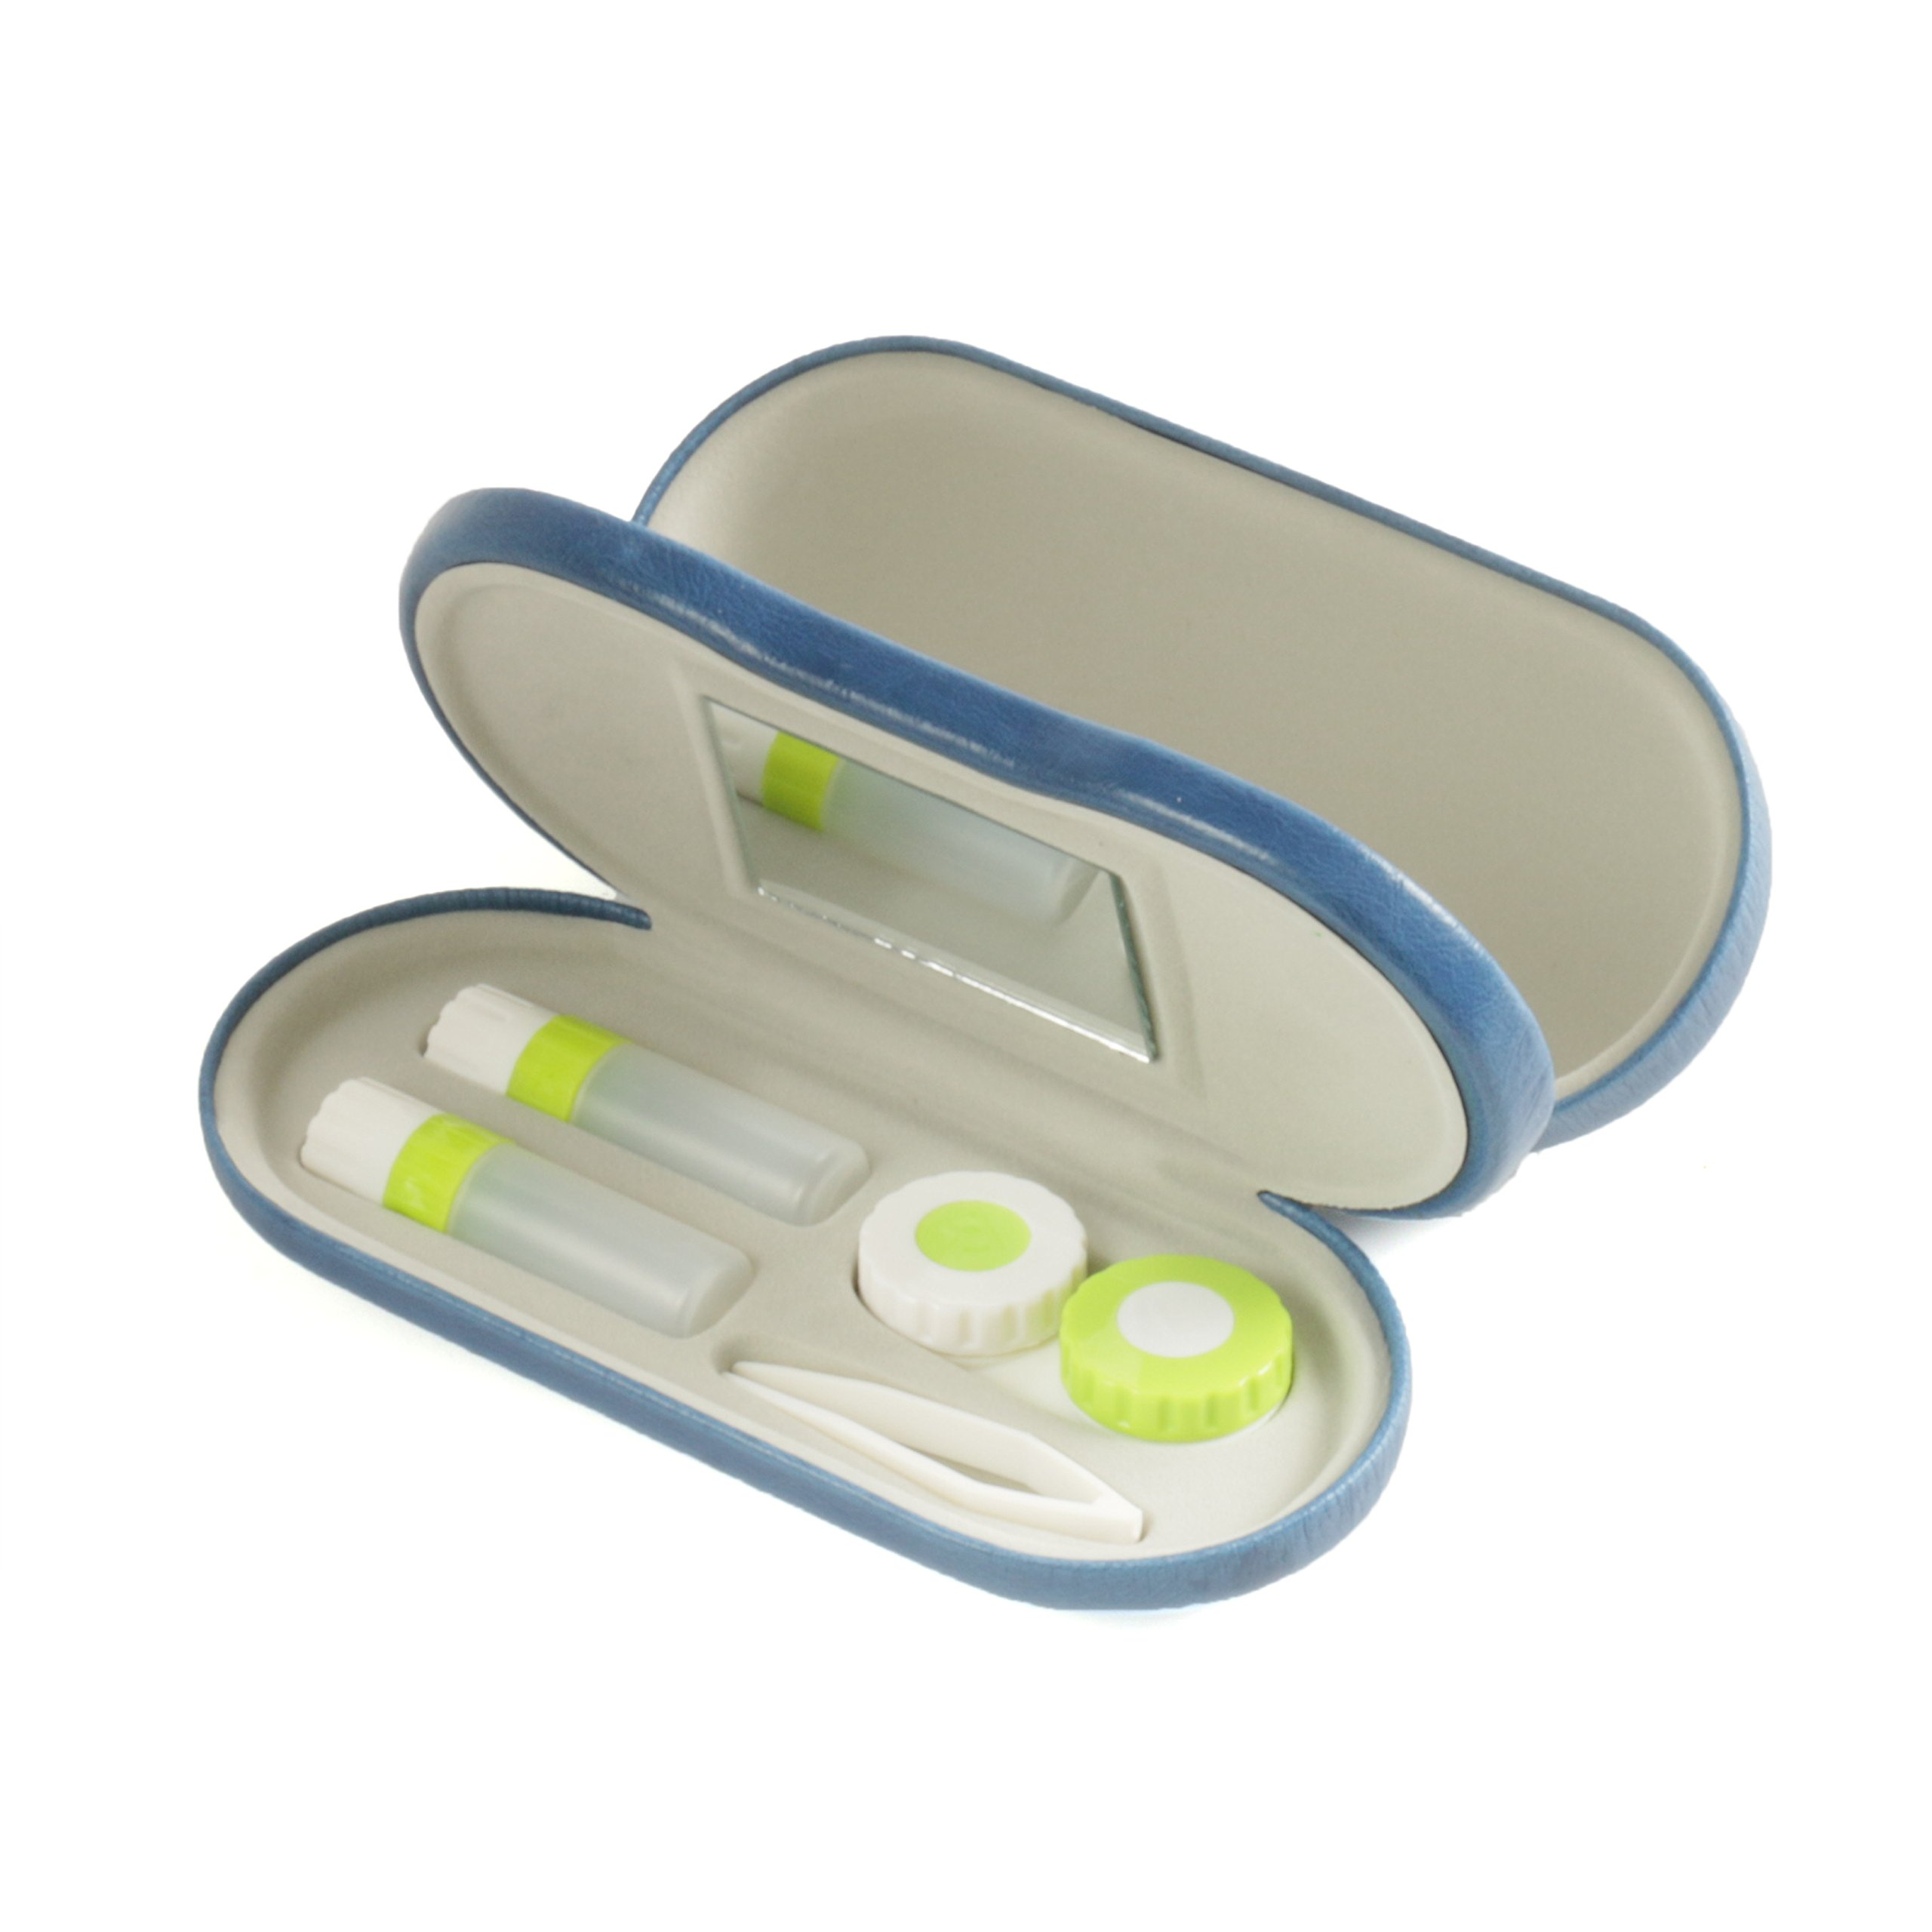 Bissport Glasses Contacts Lens Double Use Case Assorted Travel Kit - Blue